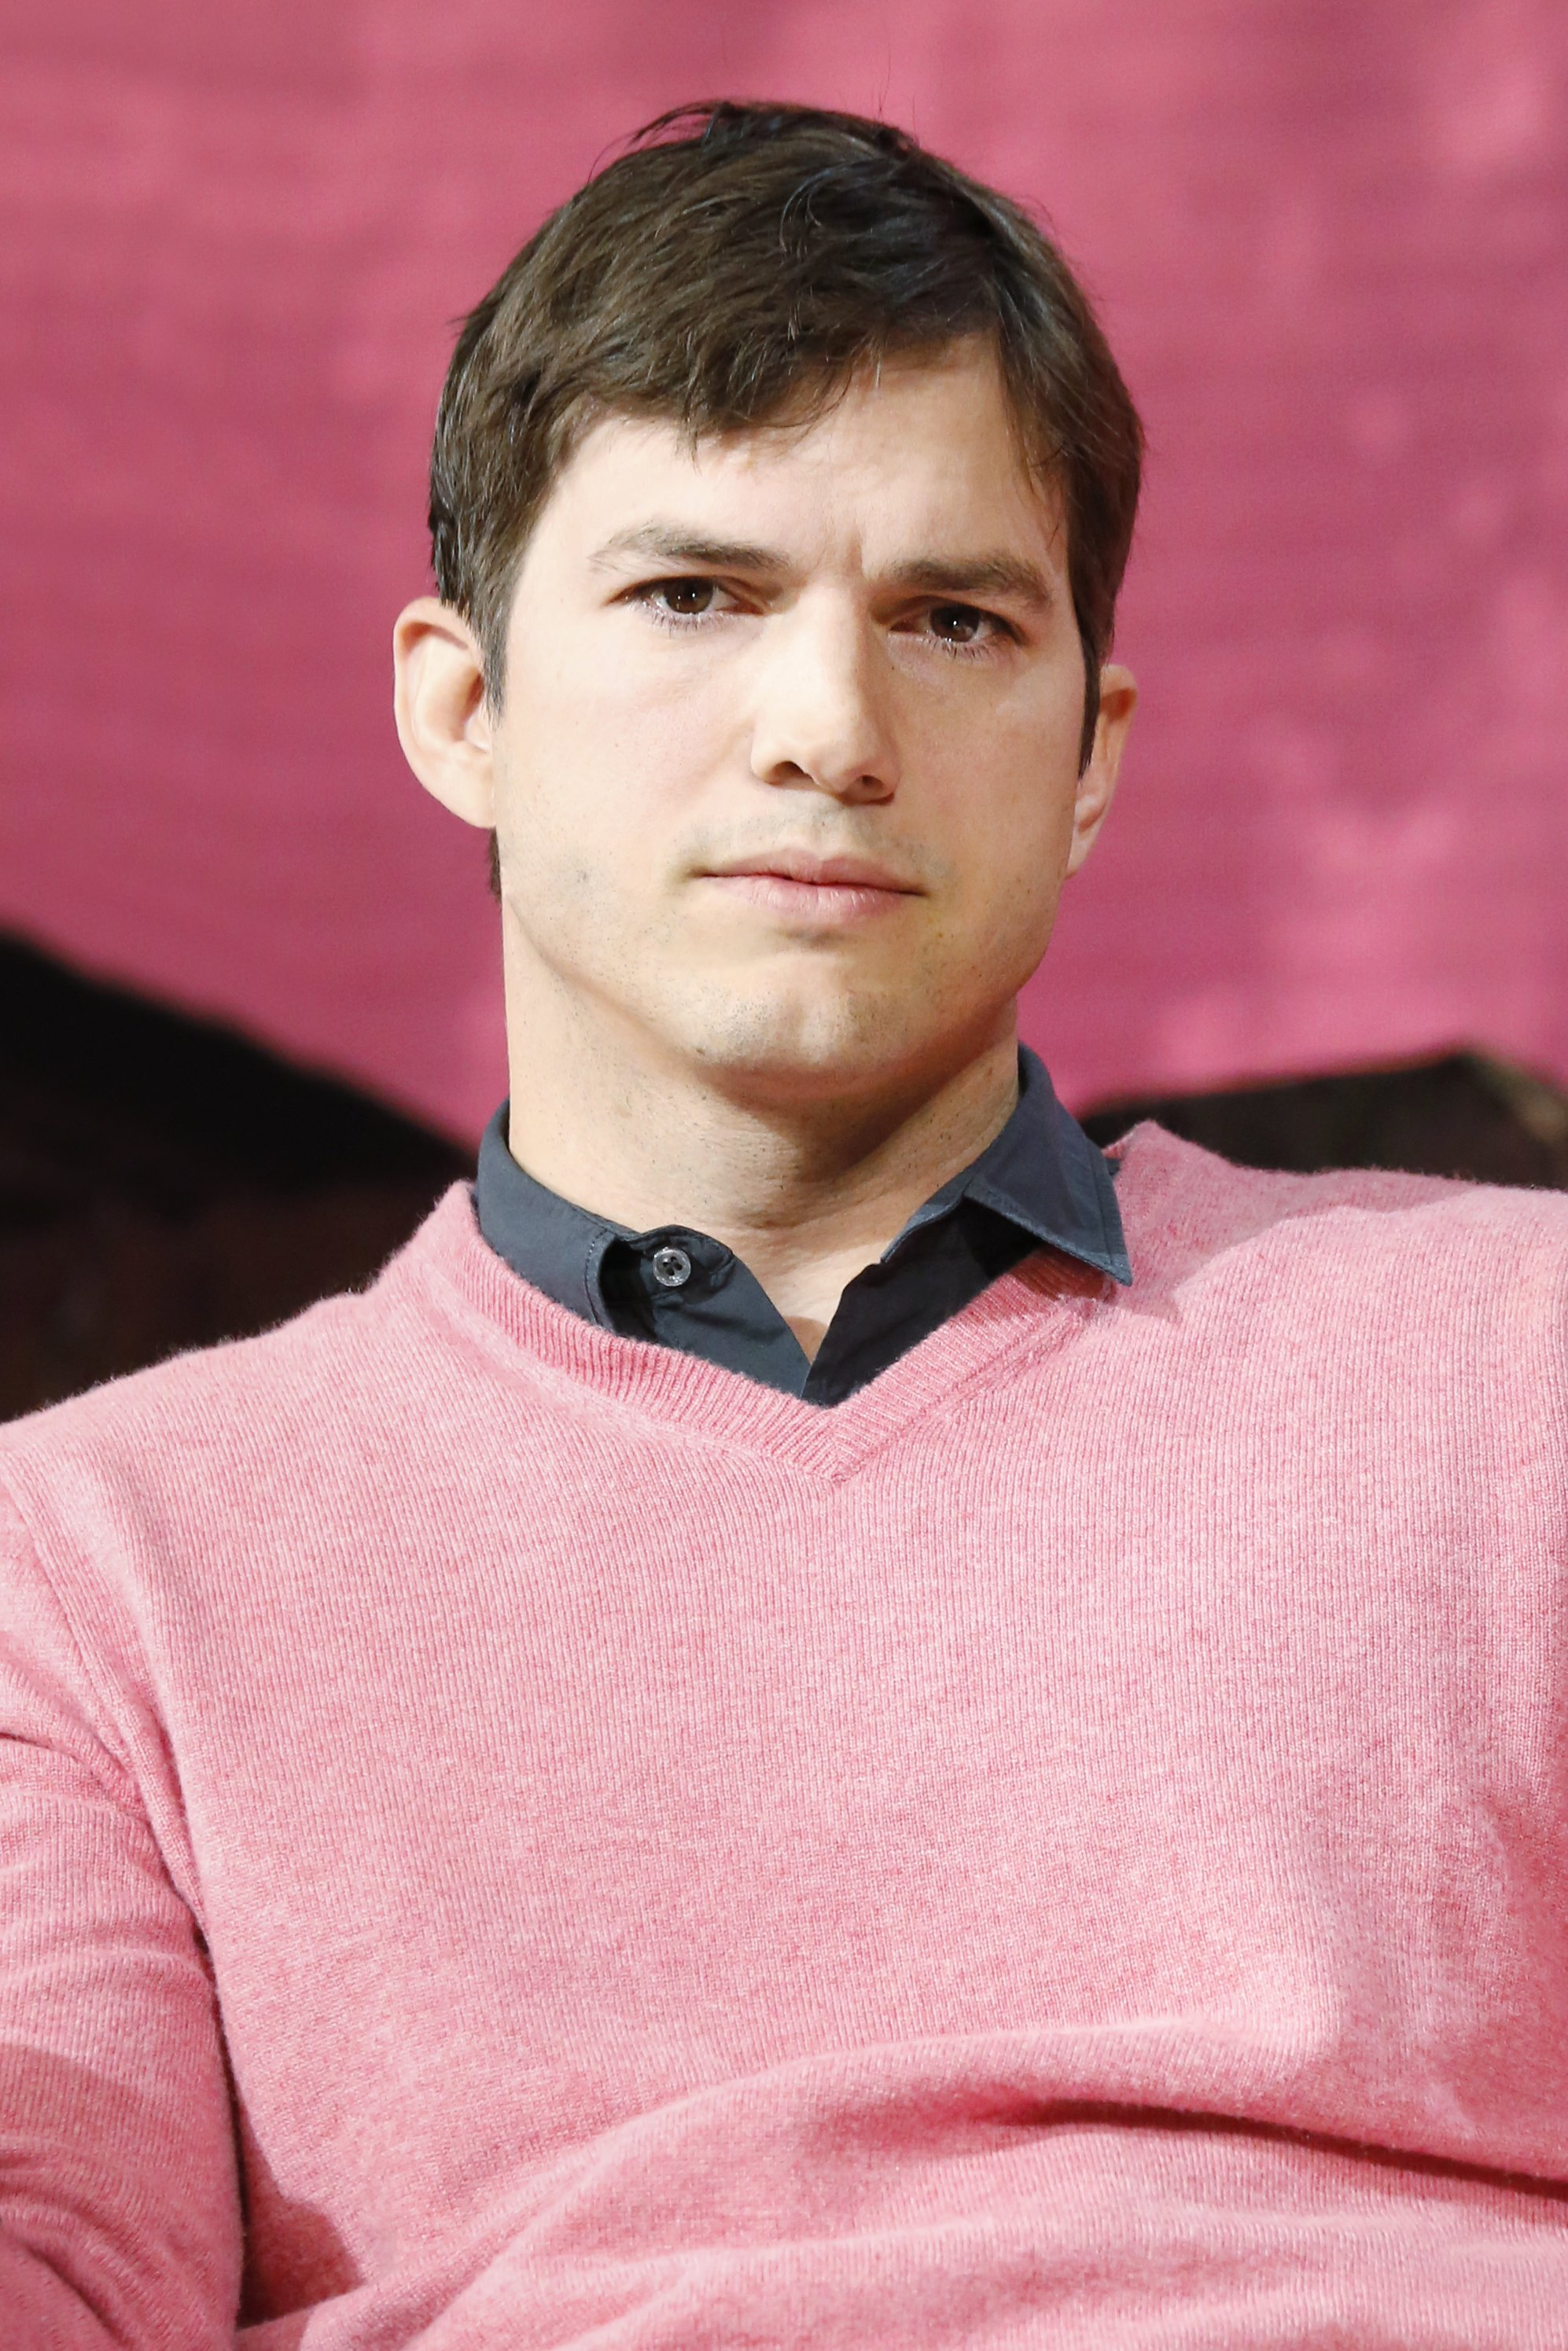 Ashton Kutcher appears on stage during the 'The Game Plan: Strategies for Entrepreneurs' Airbnb Open 2016 on November 19, 2016, in Los Angeles, California. | Source: Getty Images.